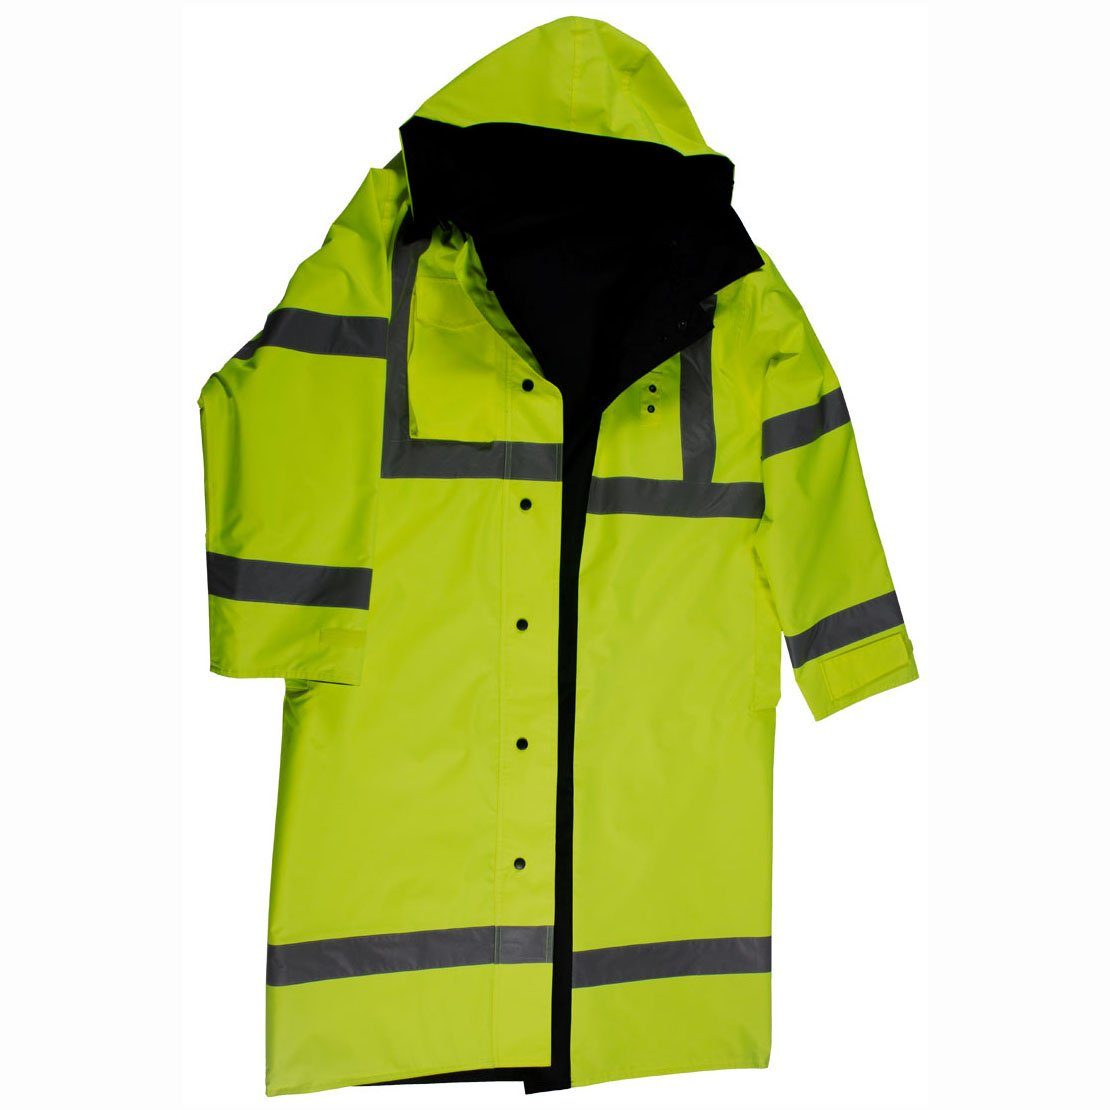 Petra Roc LRC-48RV-C3-2X 48'' Rain Coat Waterproof, Reversible Lime/Black, ANSI Class 3, w/Detachable Hood & Side Slits, 2X